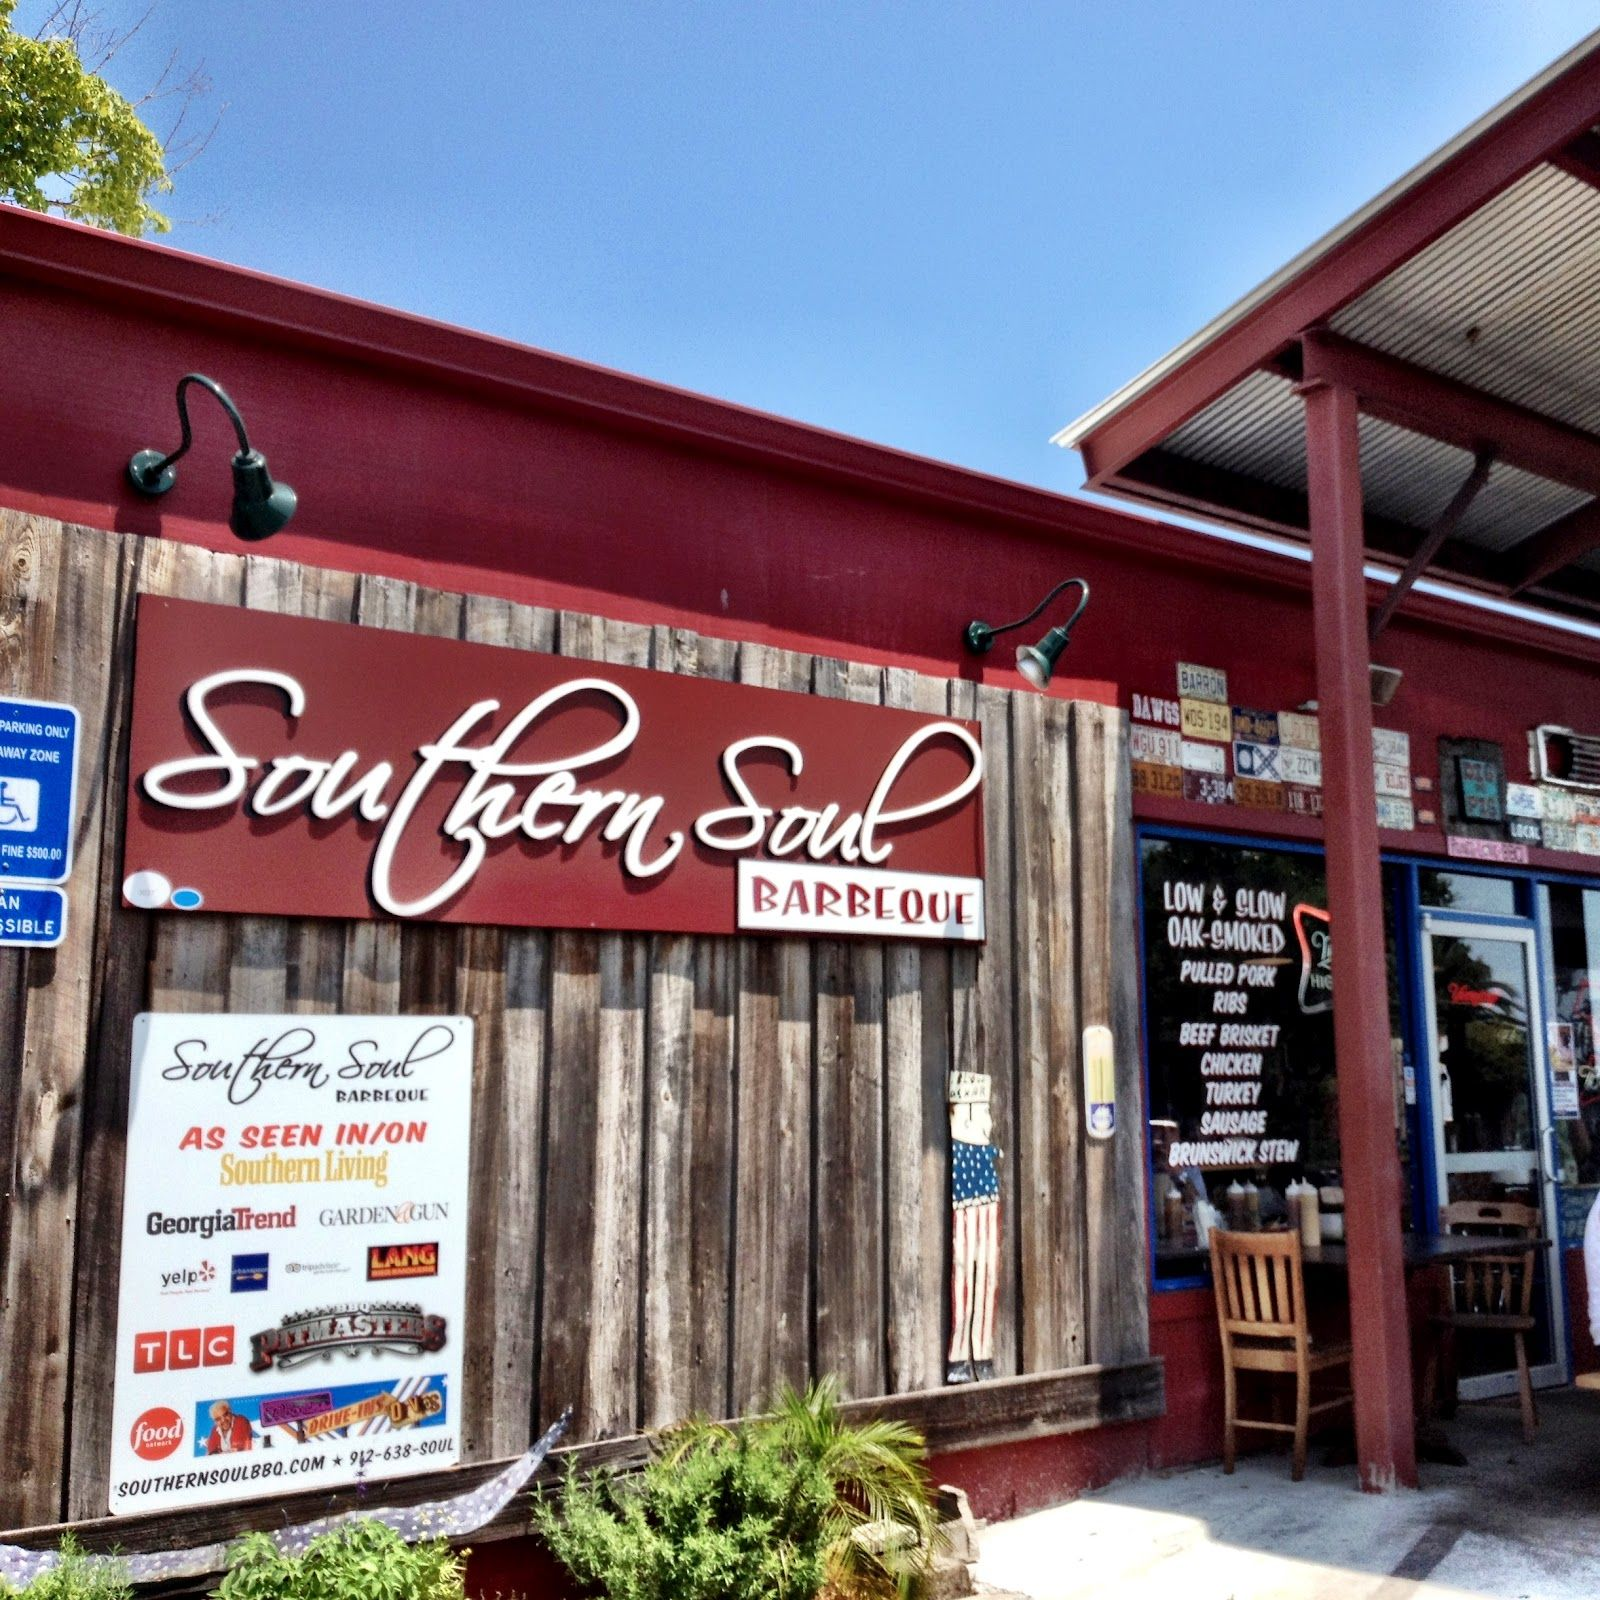 St Simons Island Restaurant On Diners Drive Ins And Dives